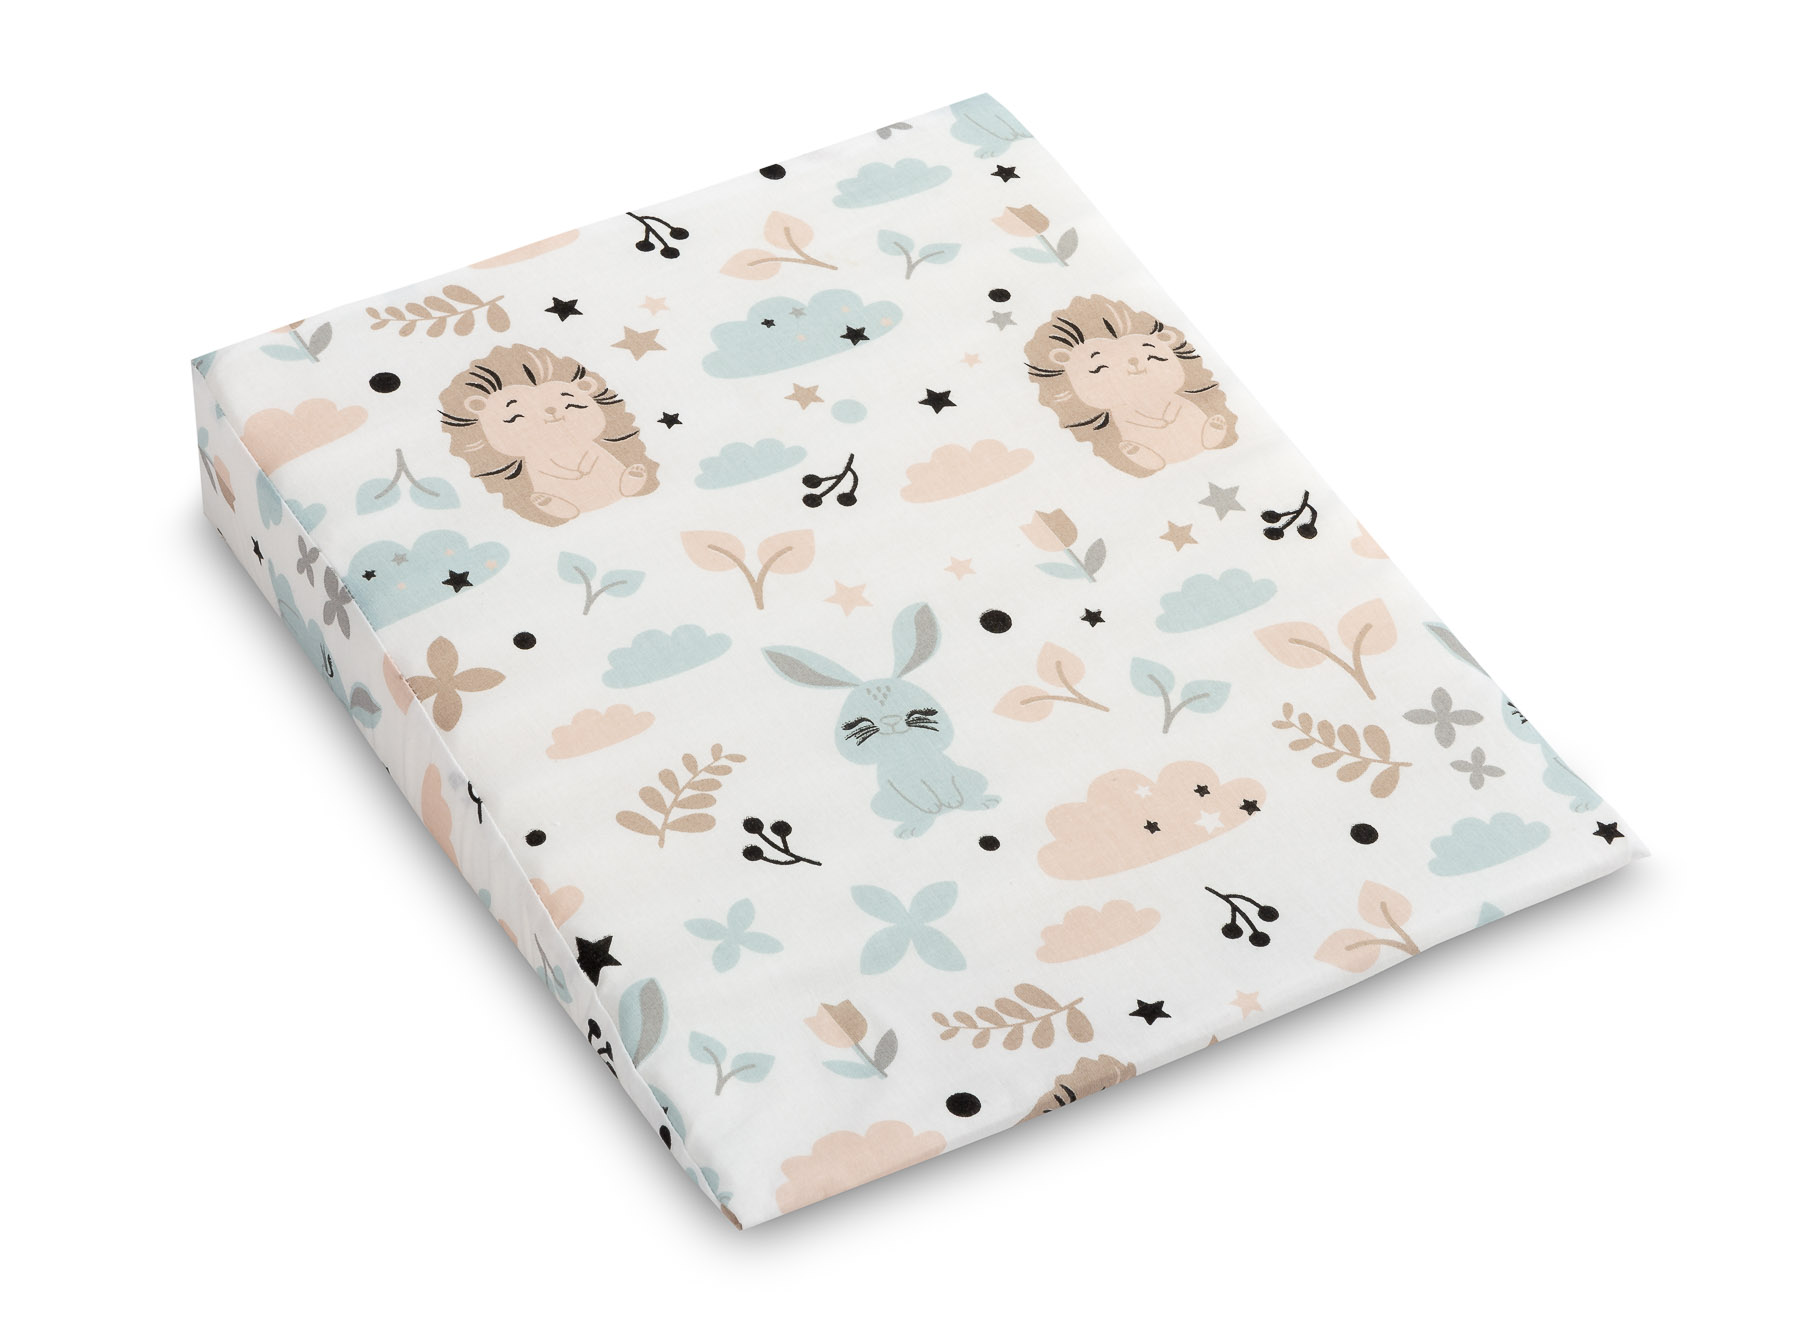 38×30 Wedge Pillowcases – hedgehog and rabbit